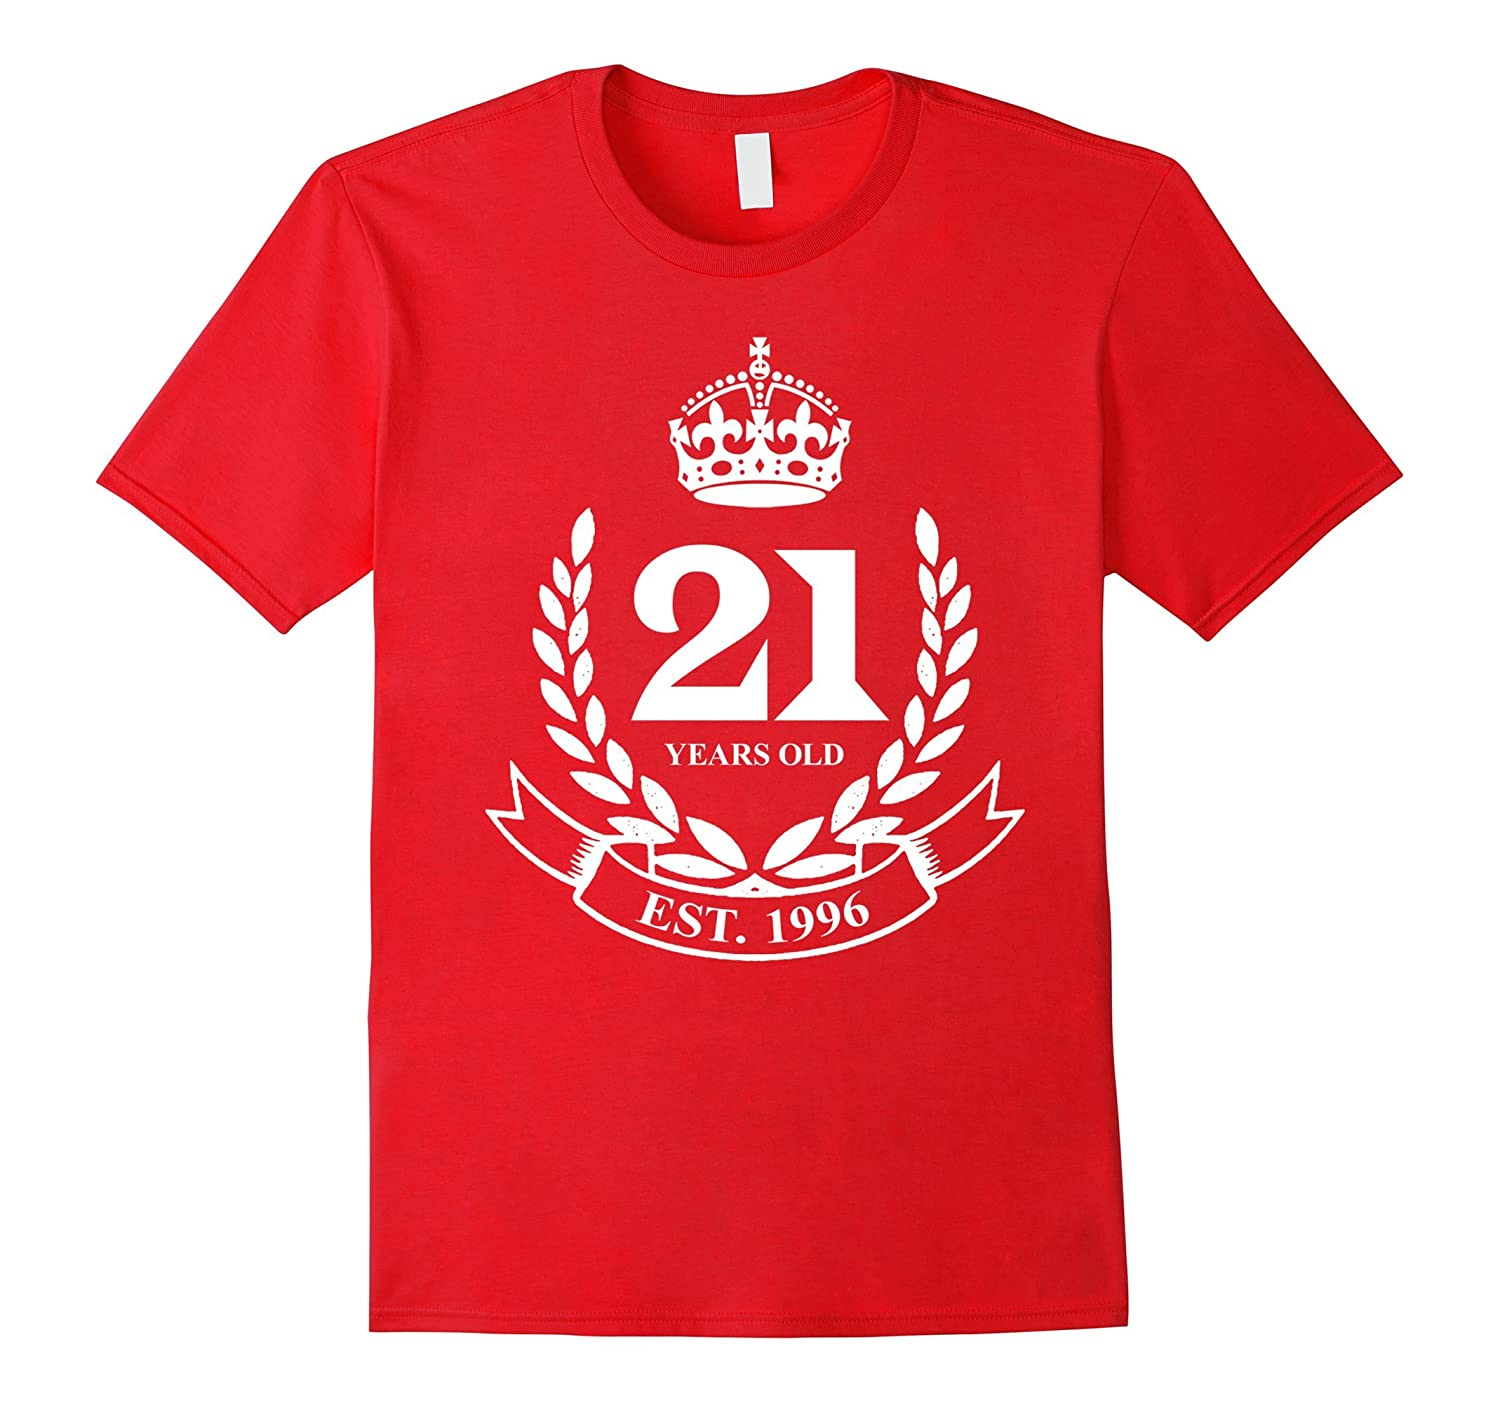 Established 1996 Classic Crest 21st Birthday 21 Years Old T--TH